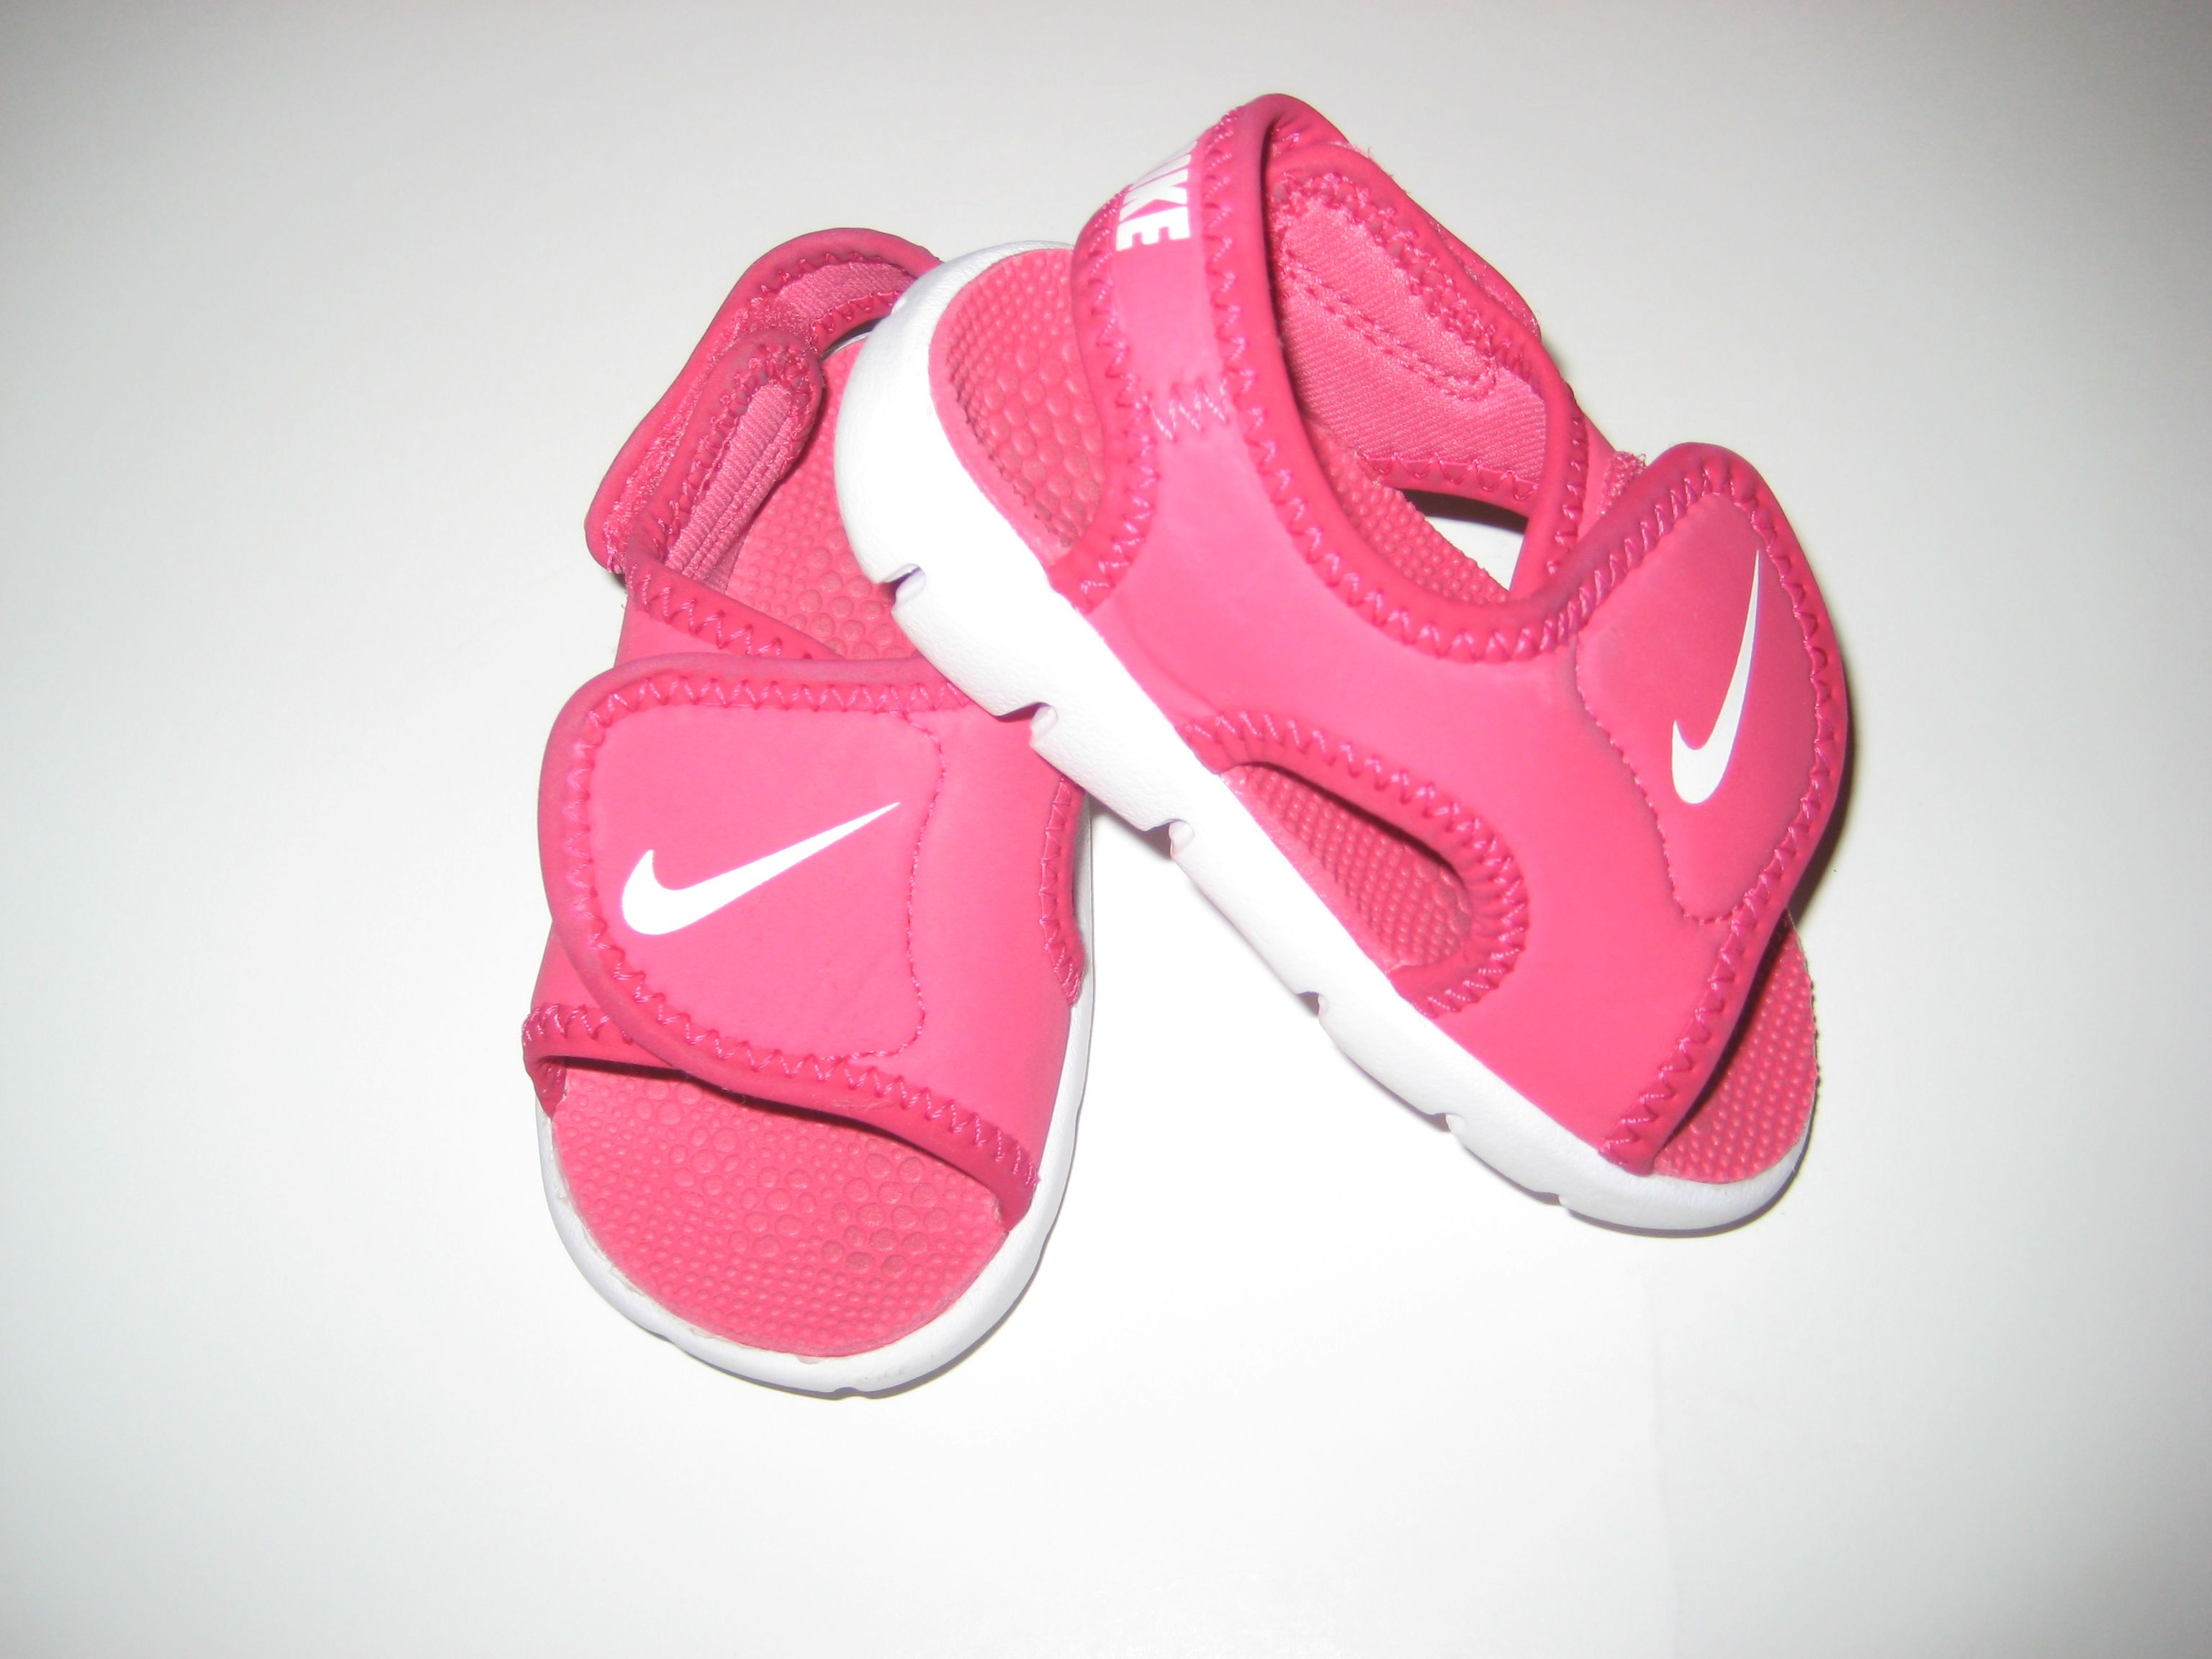 Nike Pink Sandals I got these at Foot Locker awhile ago I have